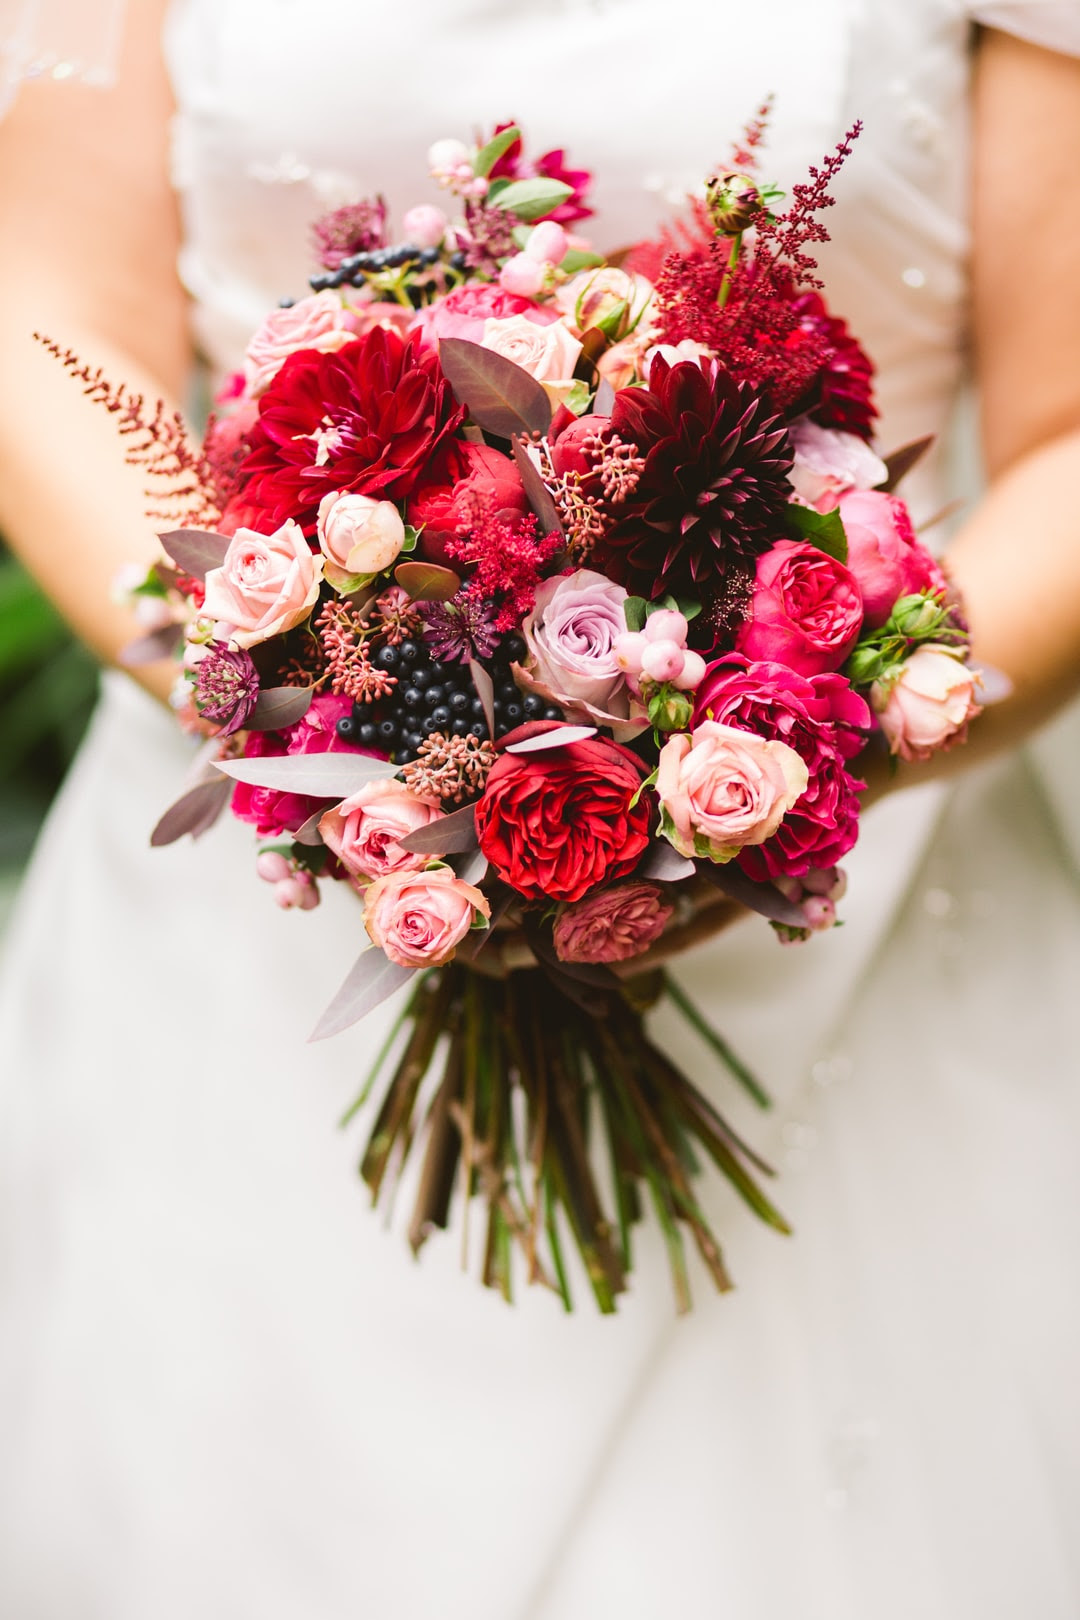 500 Bouquet Pictures Hd Download Free Images On Unsplash